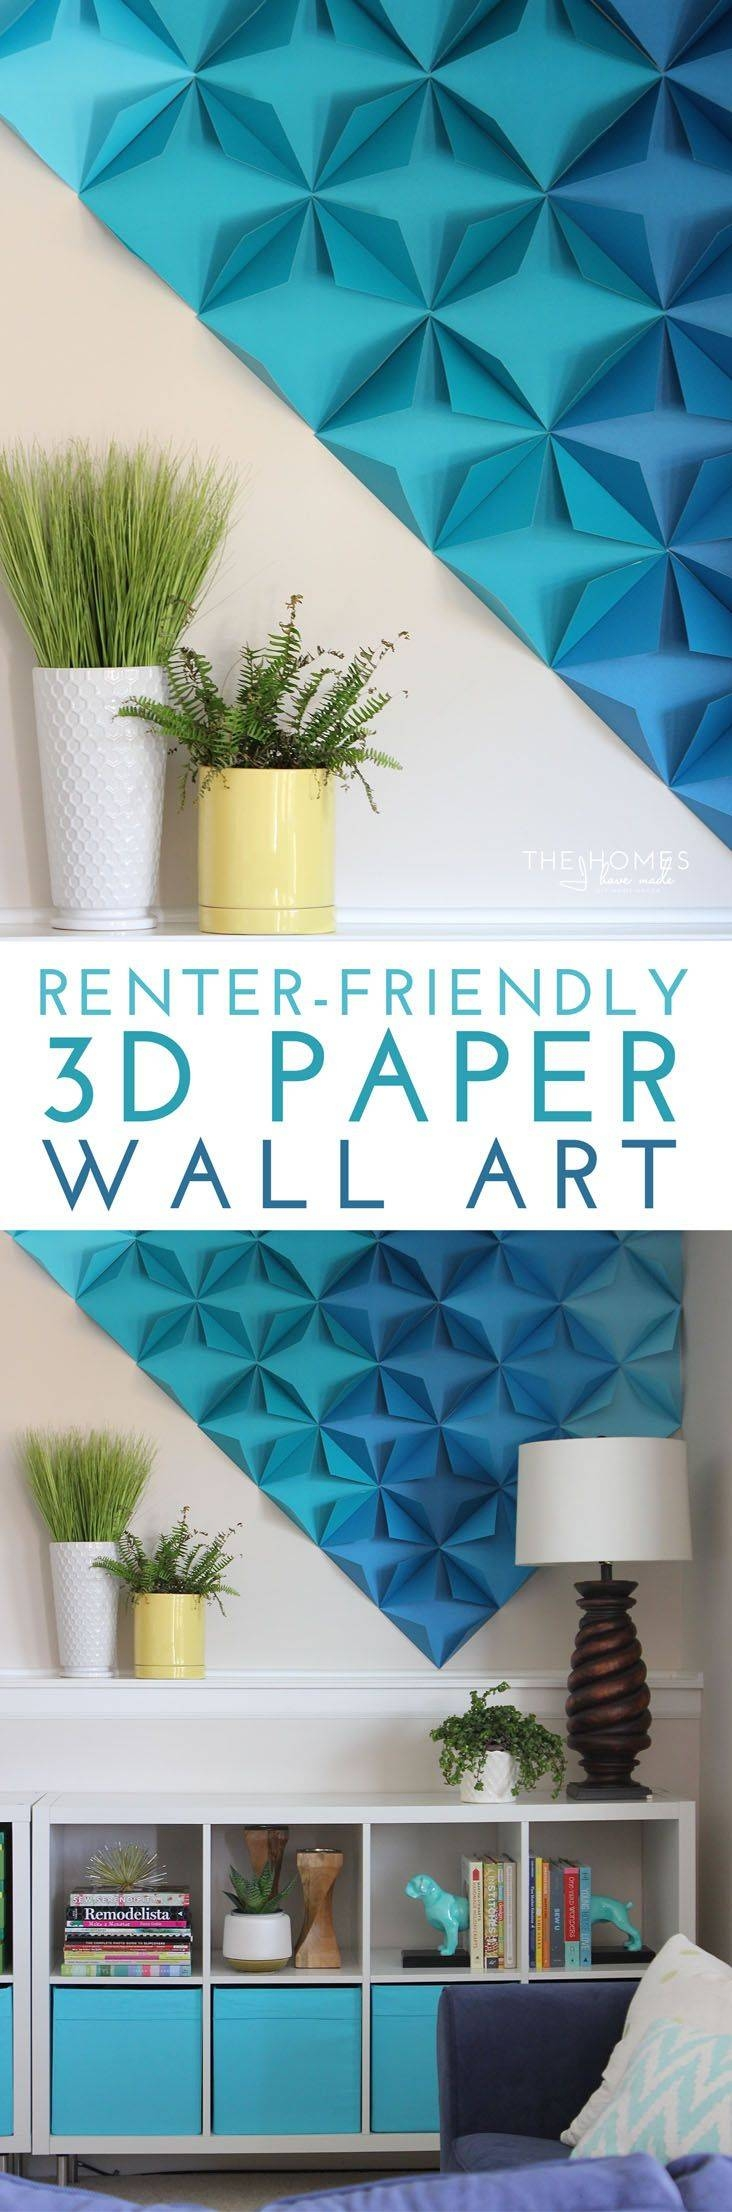 25+ Unique 3D Wall Art Ideas On Pinterest | Butterfly Wall, Diy With Regard To Most Up To Date 3D Triangle Wall Art (View 2 of 20)